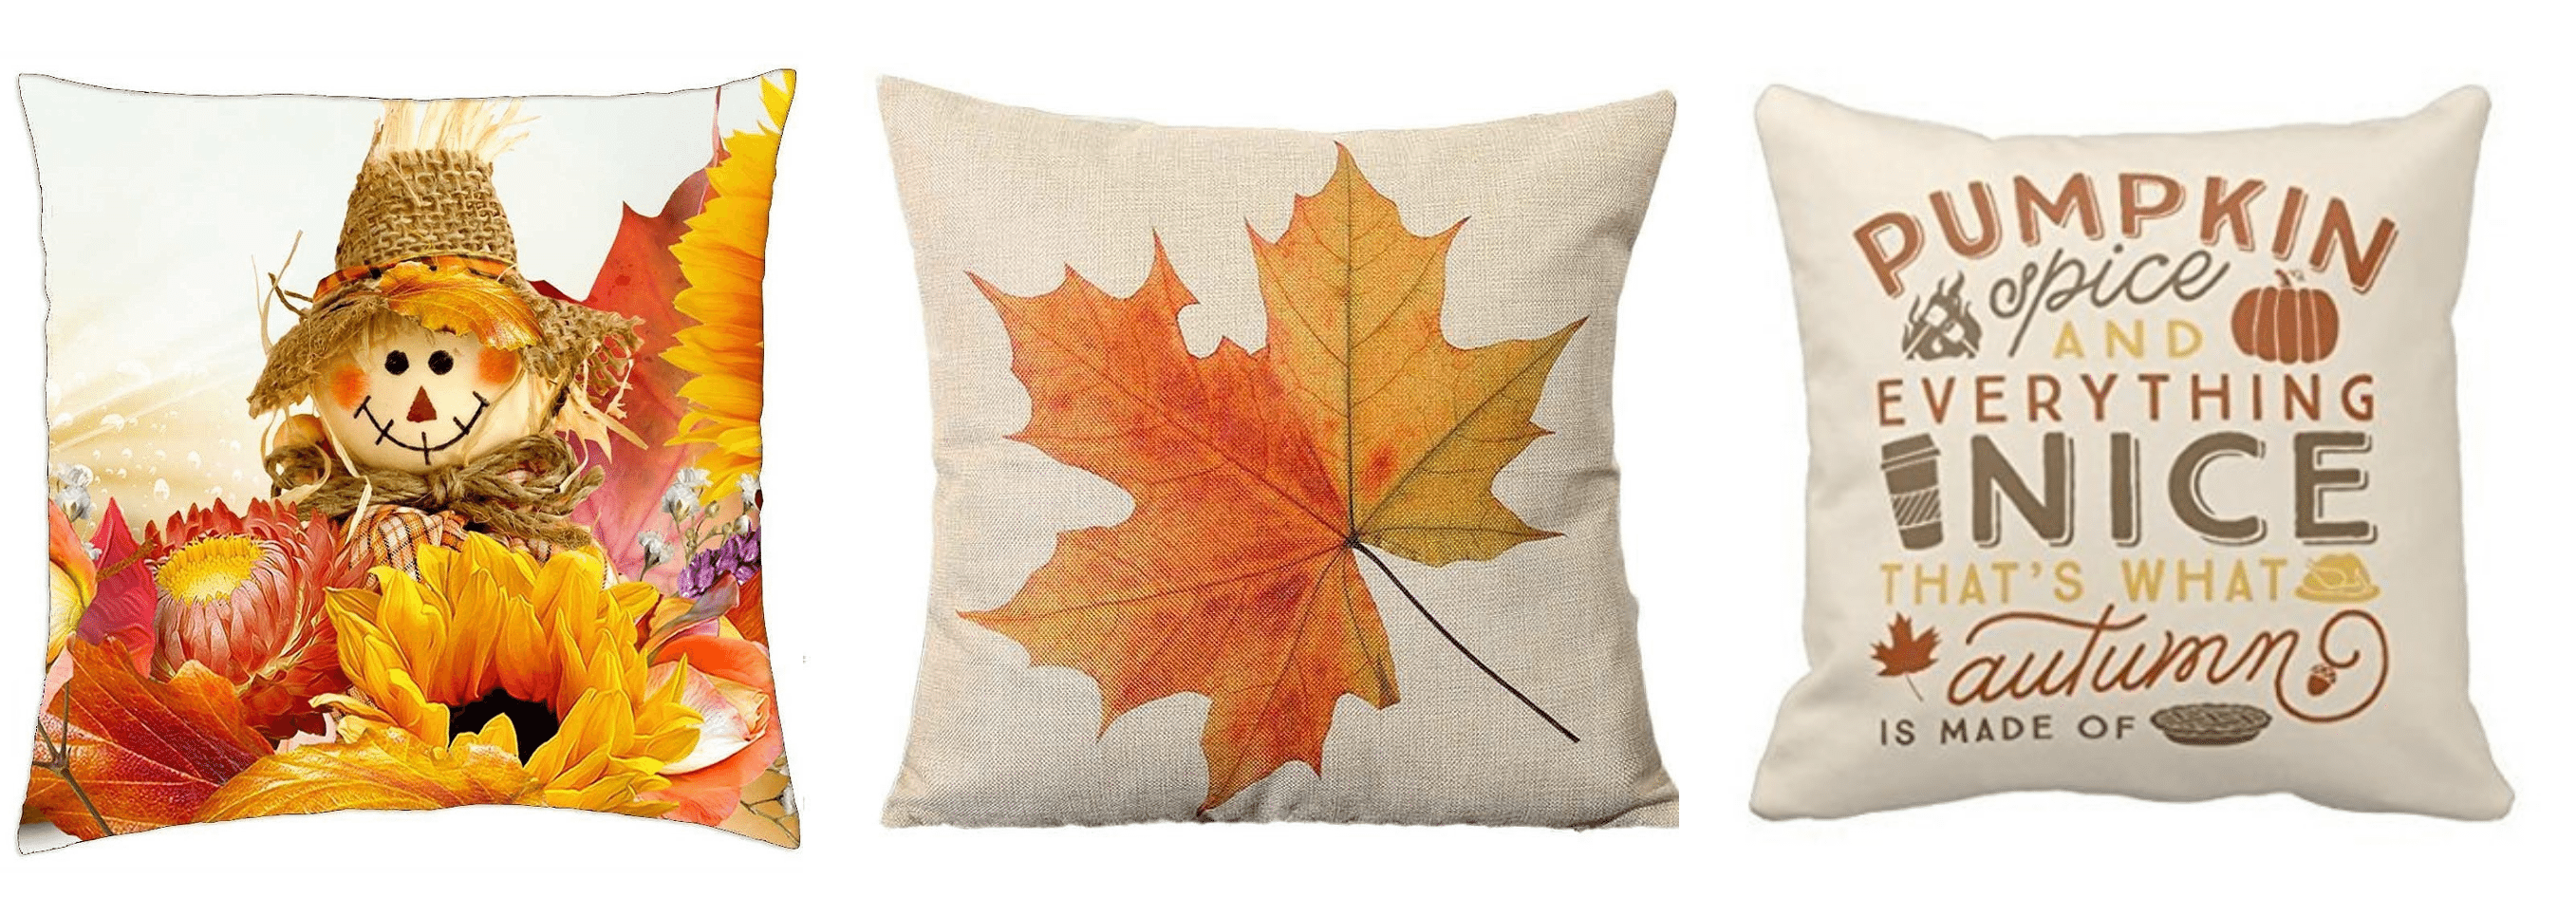 autumn to a gray and match combos your couch choosing diy mix choose playbook throw the how right home for pillows pillow